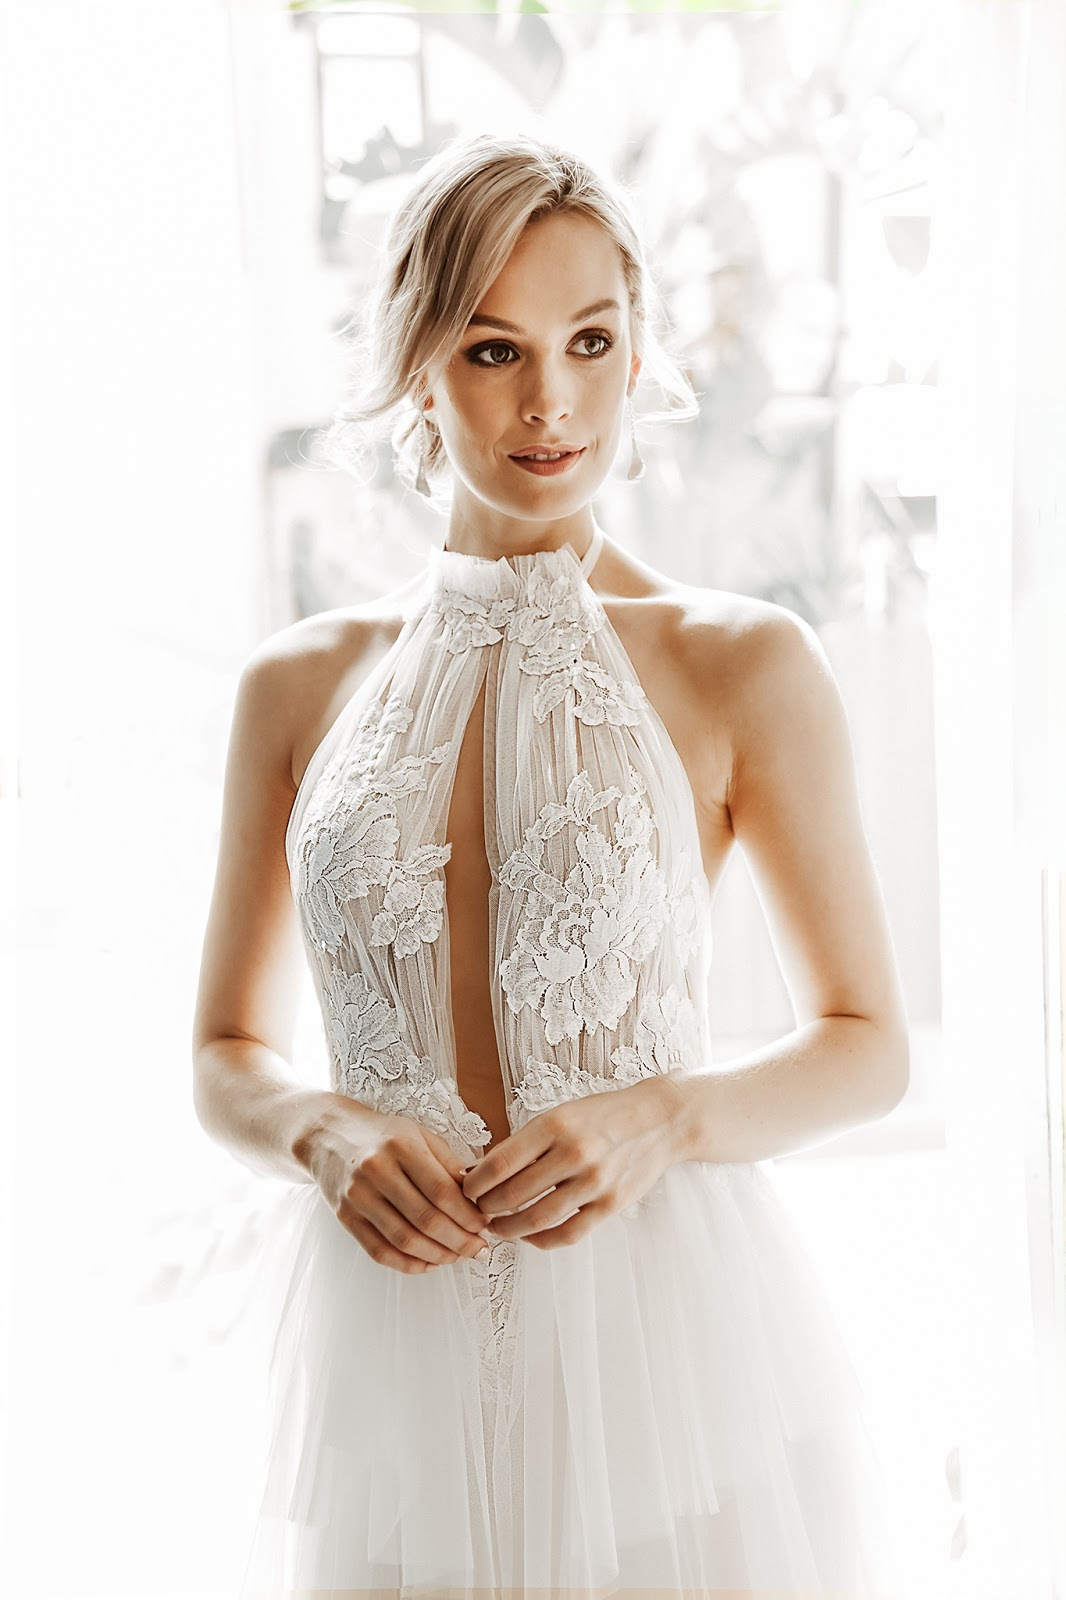 SYDNEY BRIDAL COUTURE AUSTRALIAN WEDDING DRESS DESIGNER SYDNEY